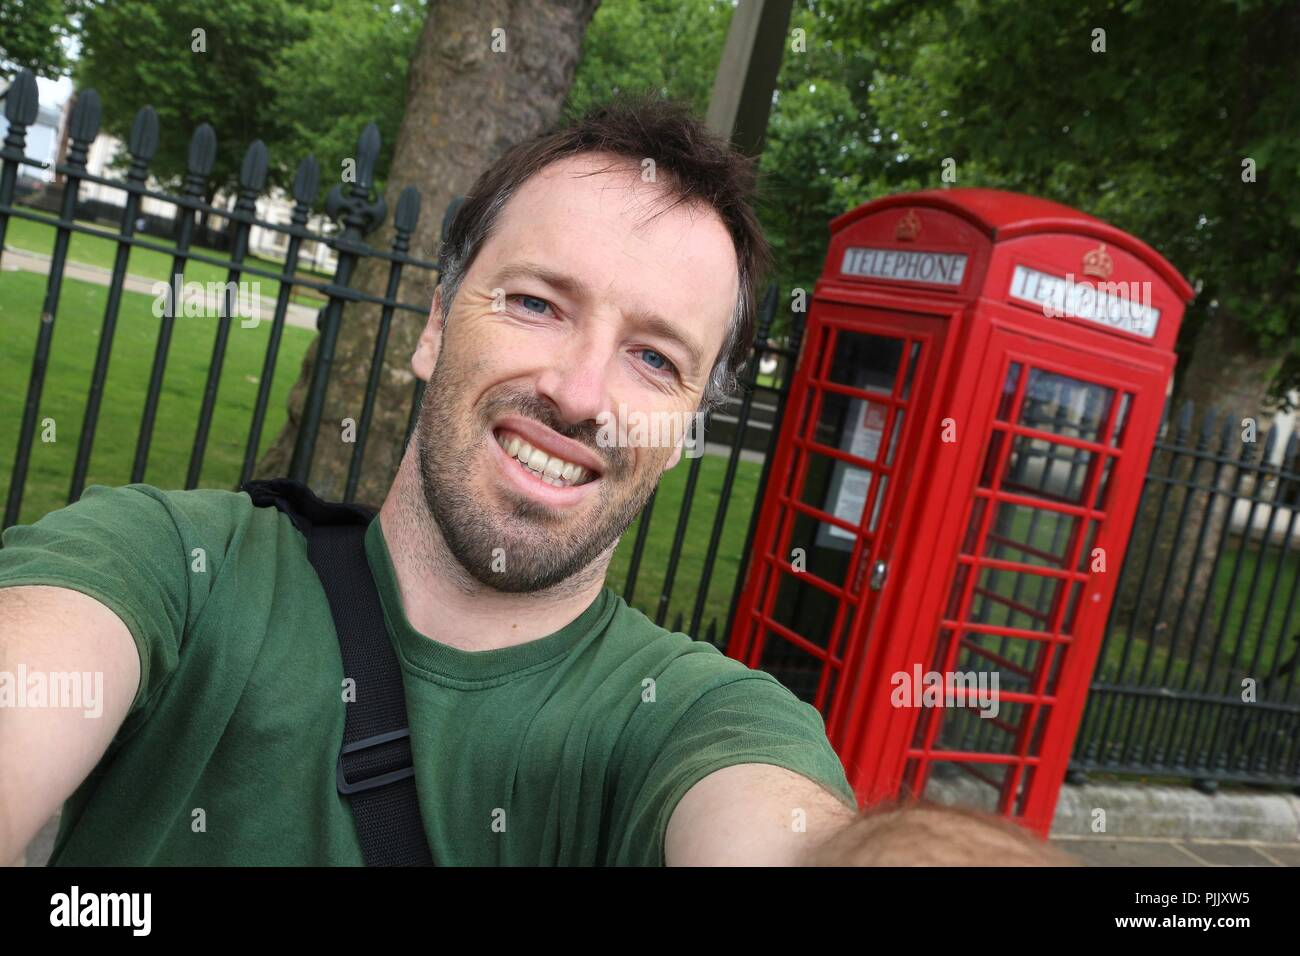 Tourist selfie with London phone box - red telephone kiosk in the UK. - Stock Image